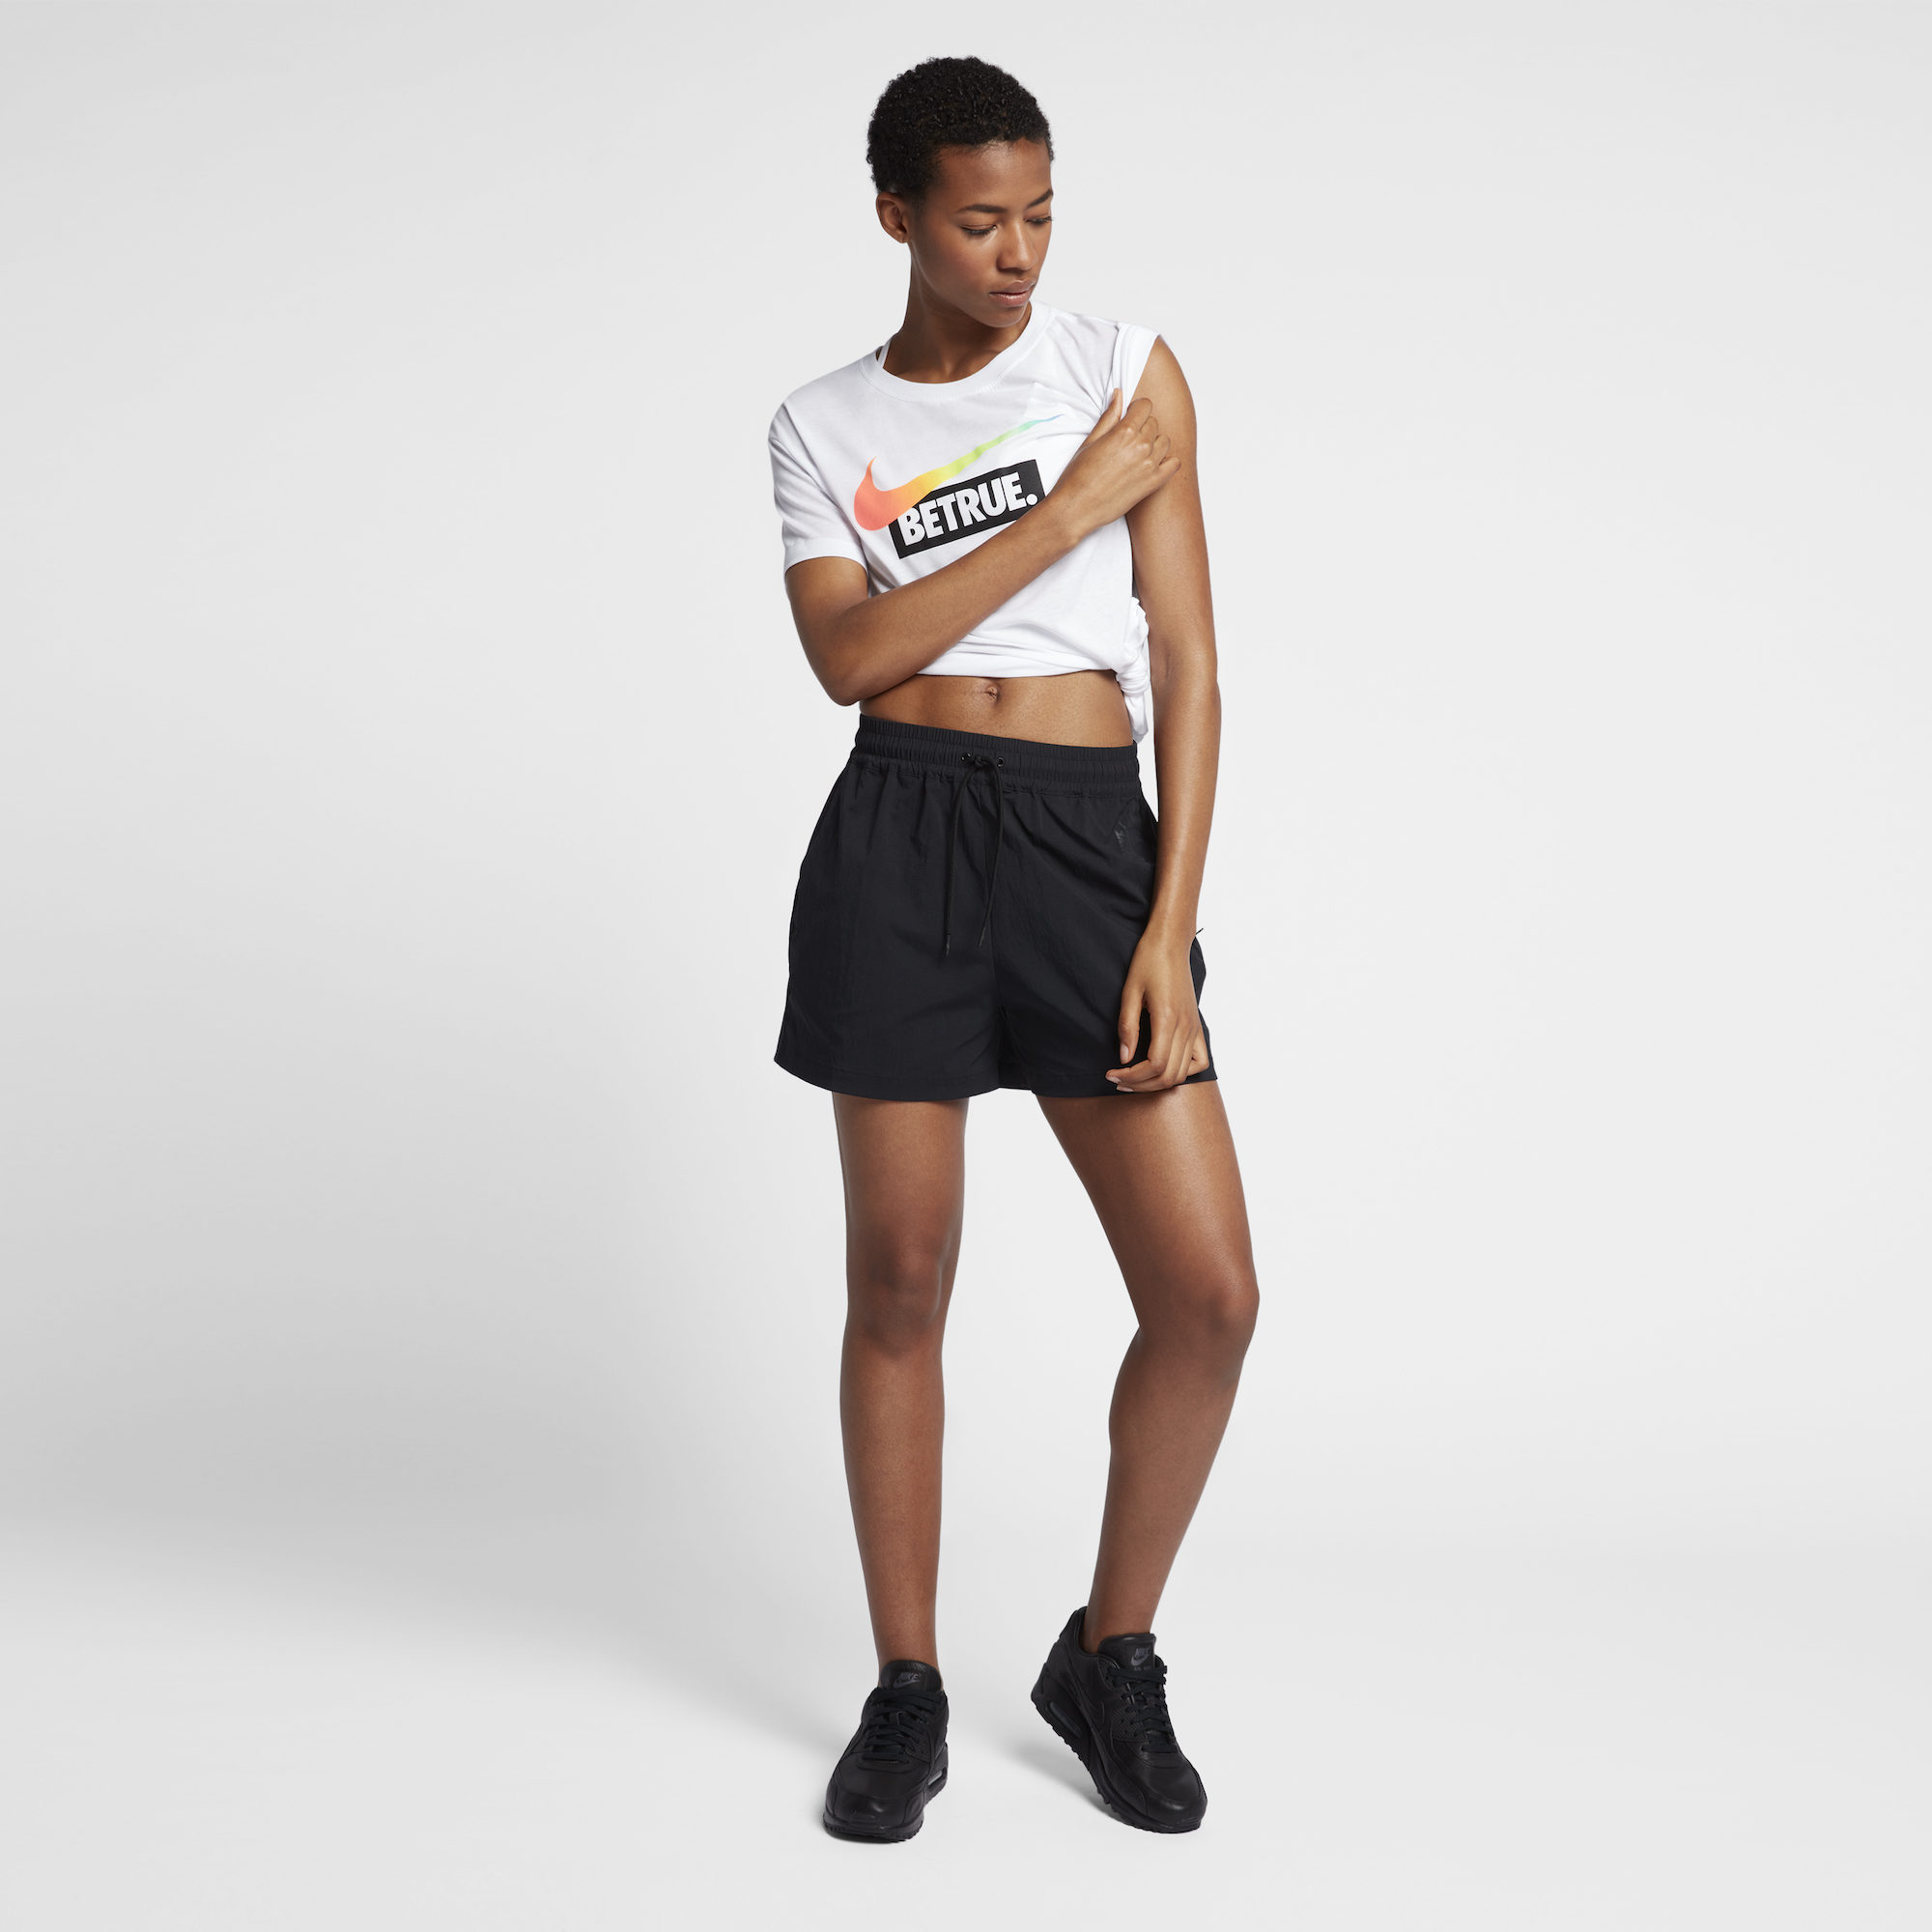 nike BETRUE 2017 collection t-shirt 2